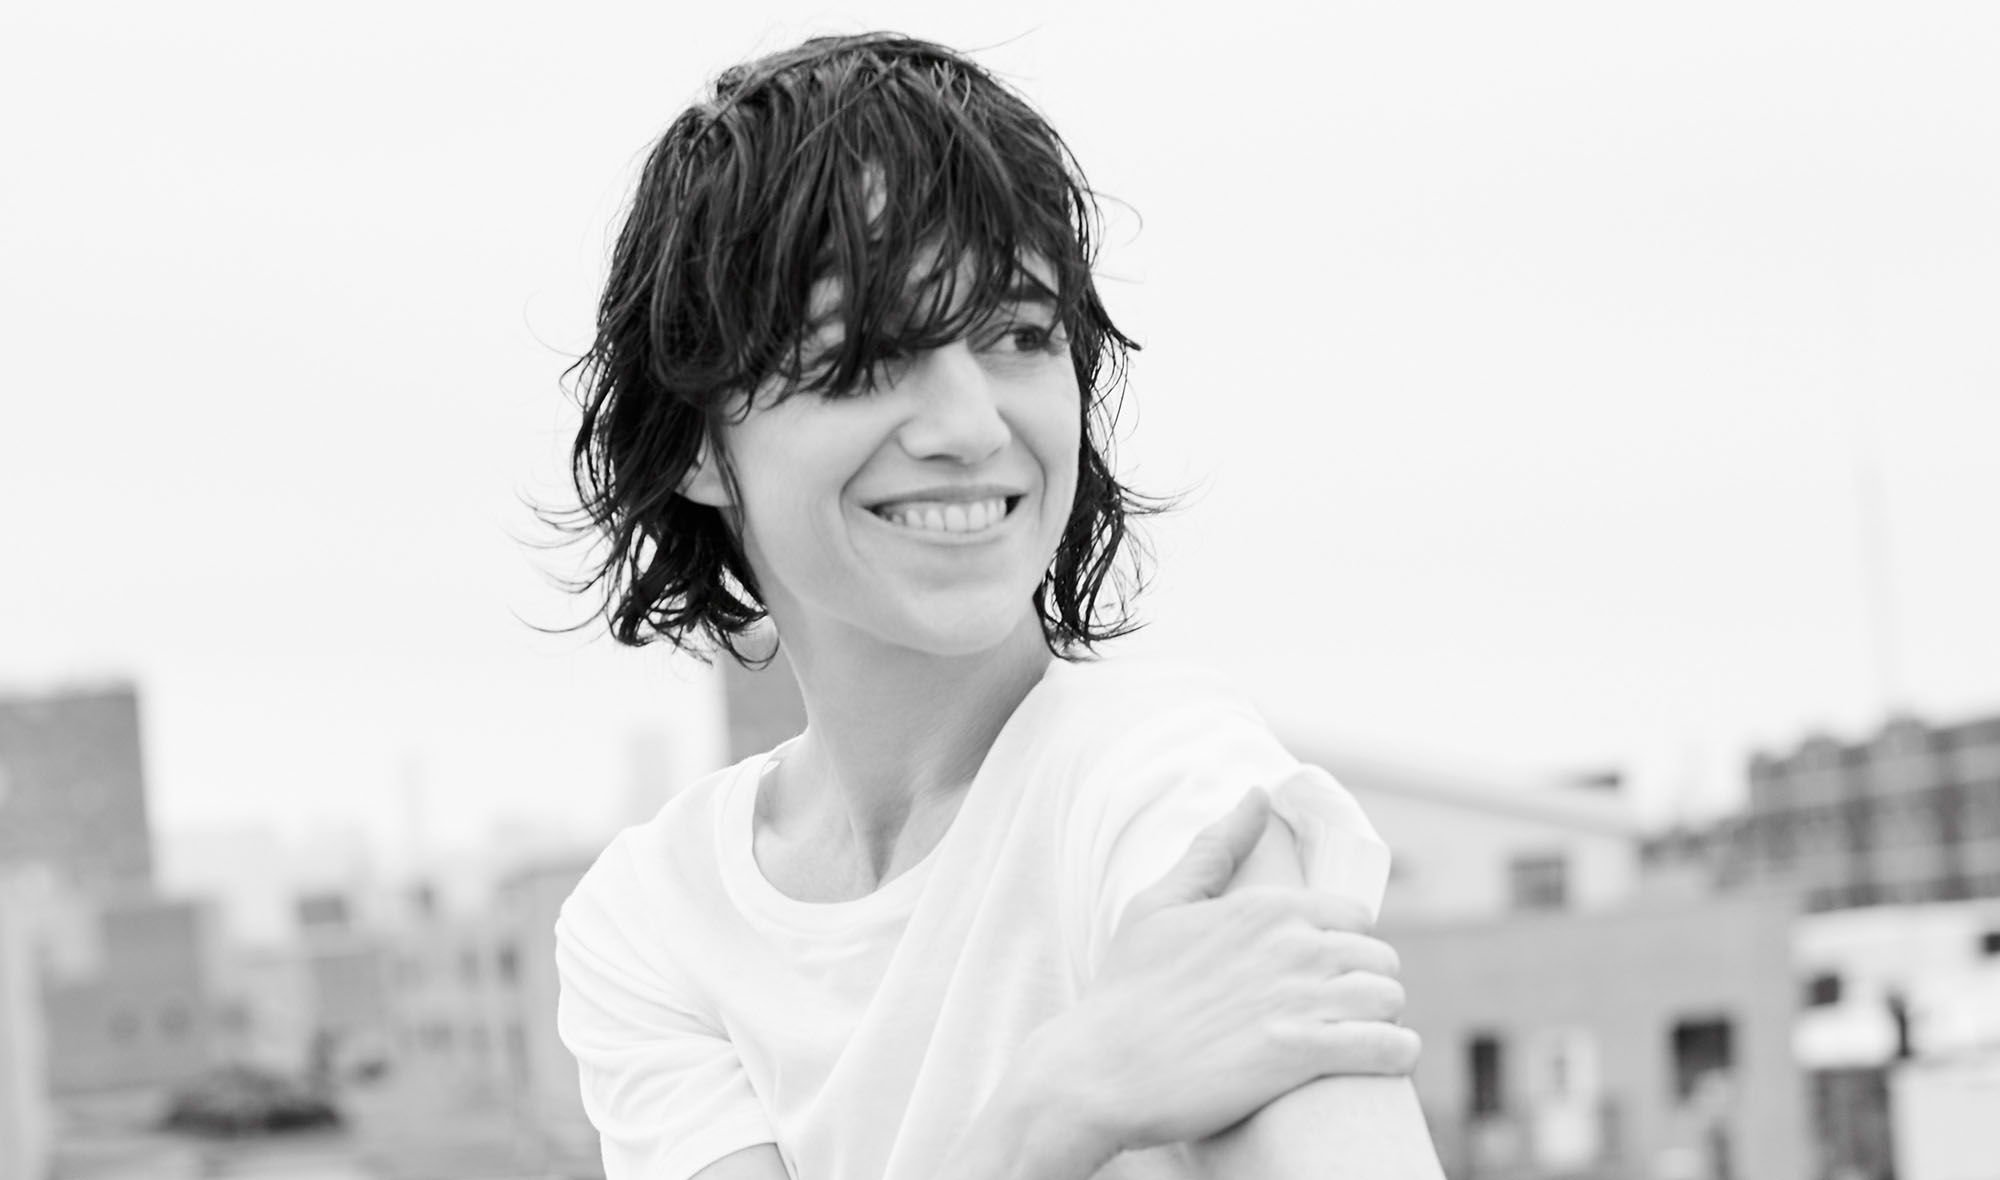 Charlotte Gainsbourg - »Rest«